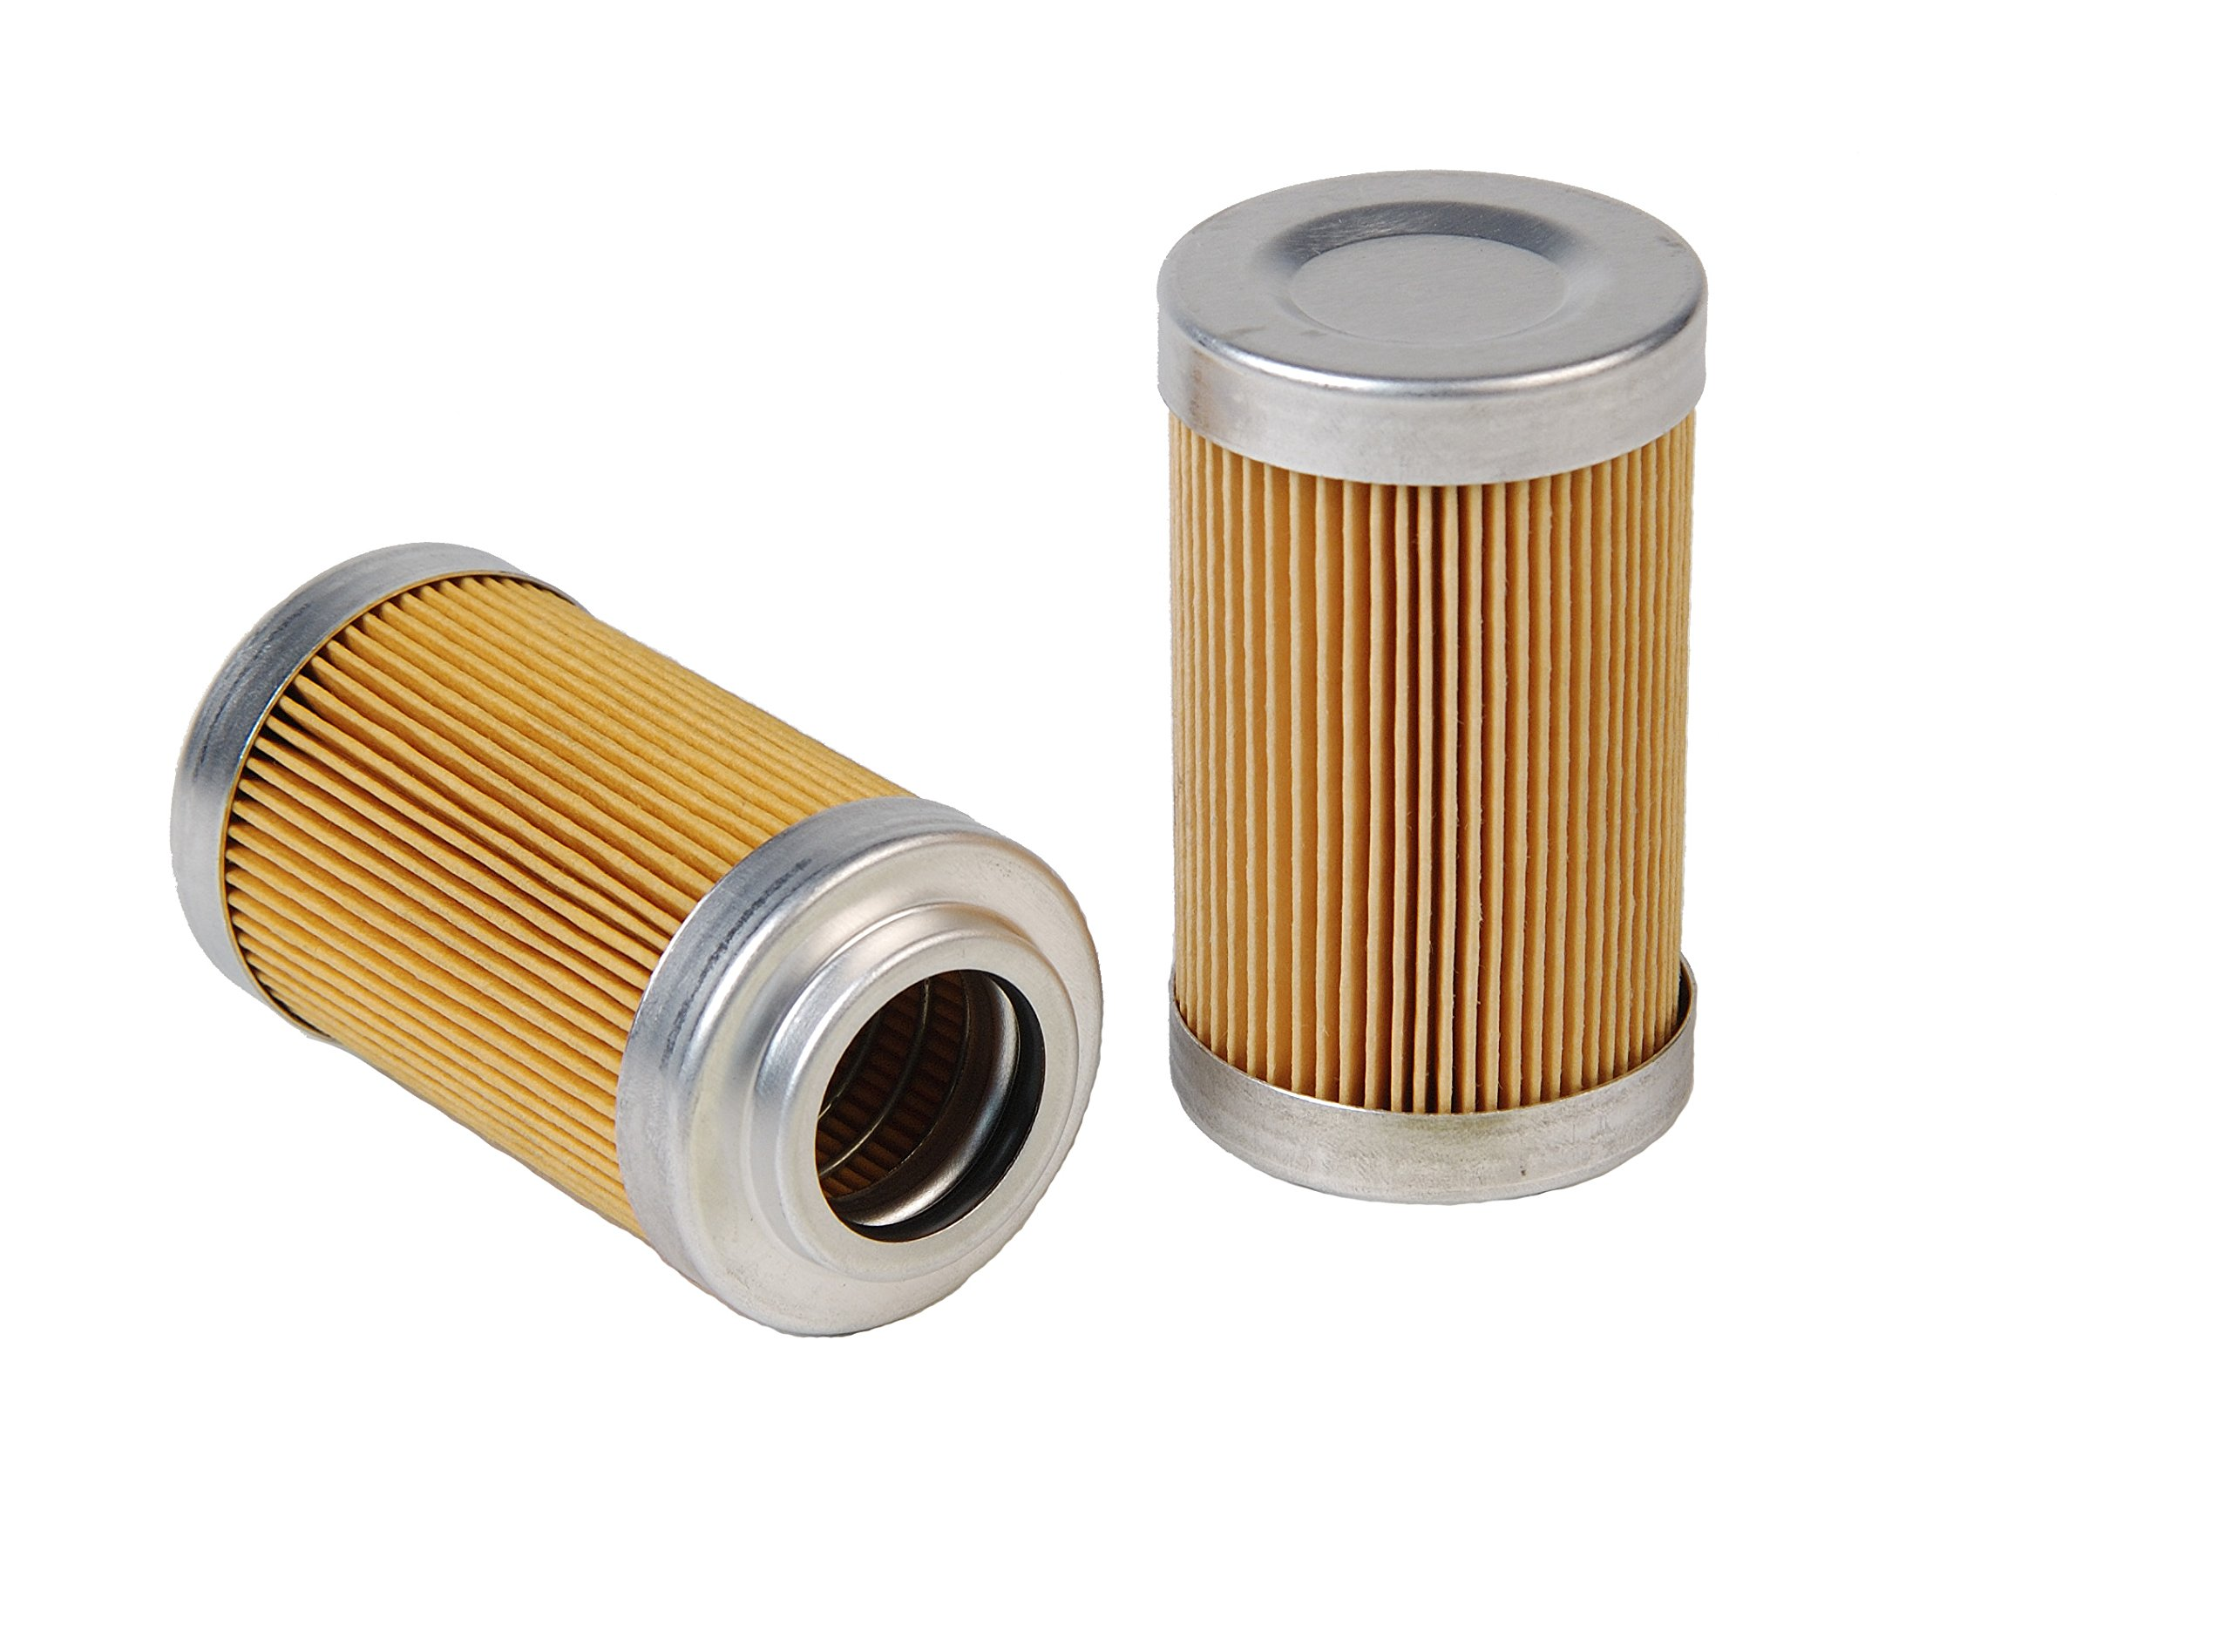 Aeromotive 12601 Replacement Filter Element, 10-Micron Cellulose, Fits All 2'' OD Filter Housings